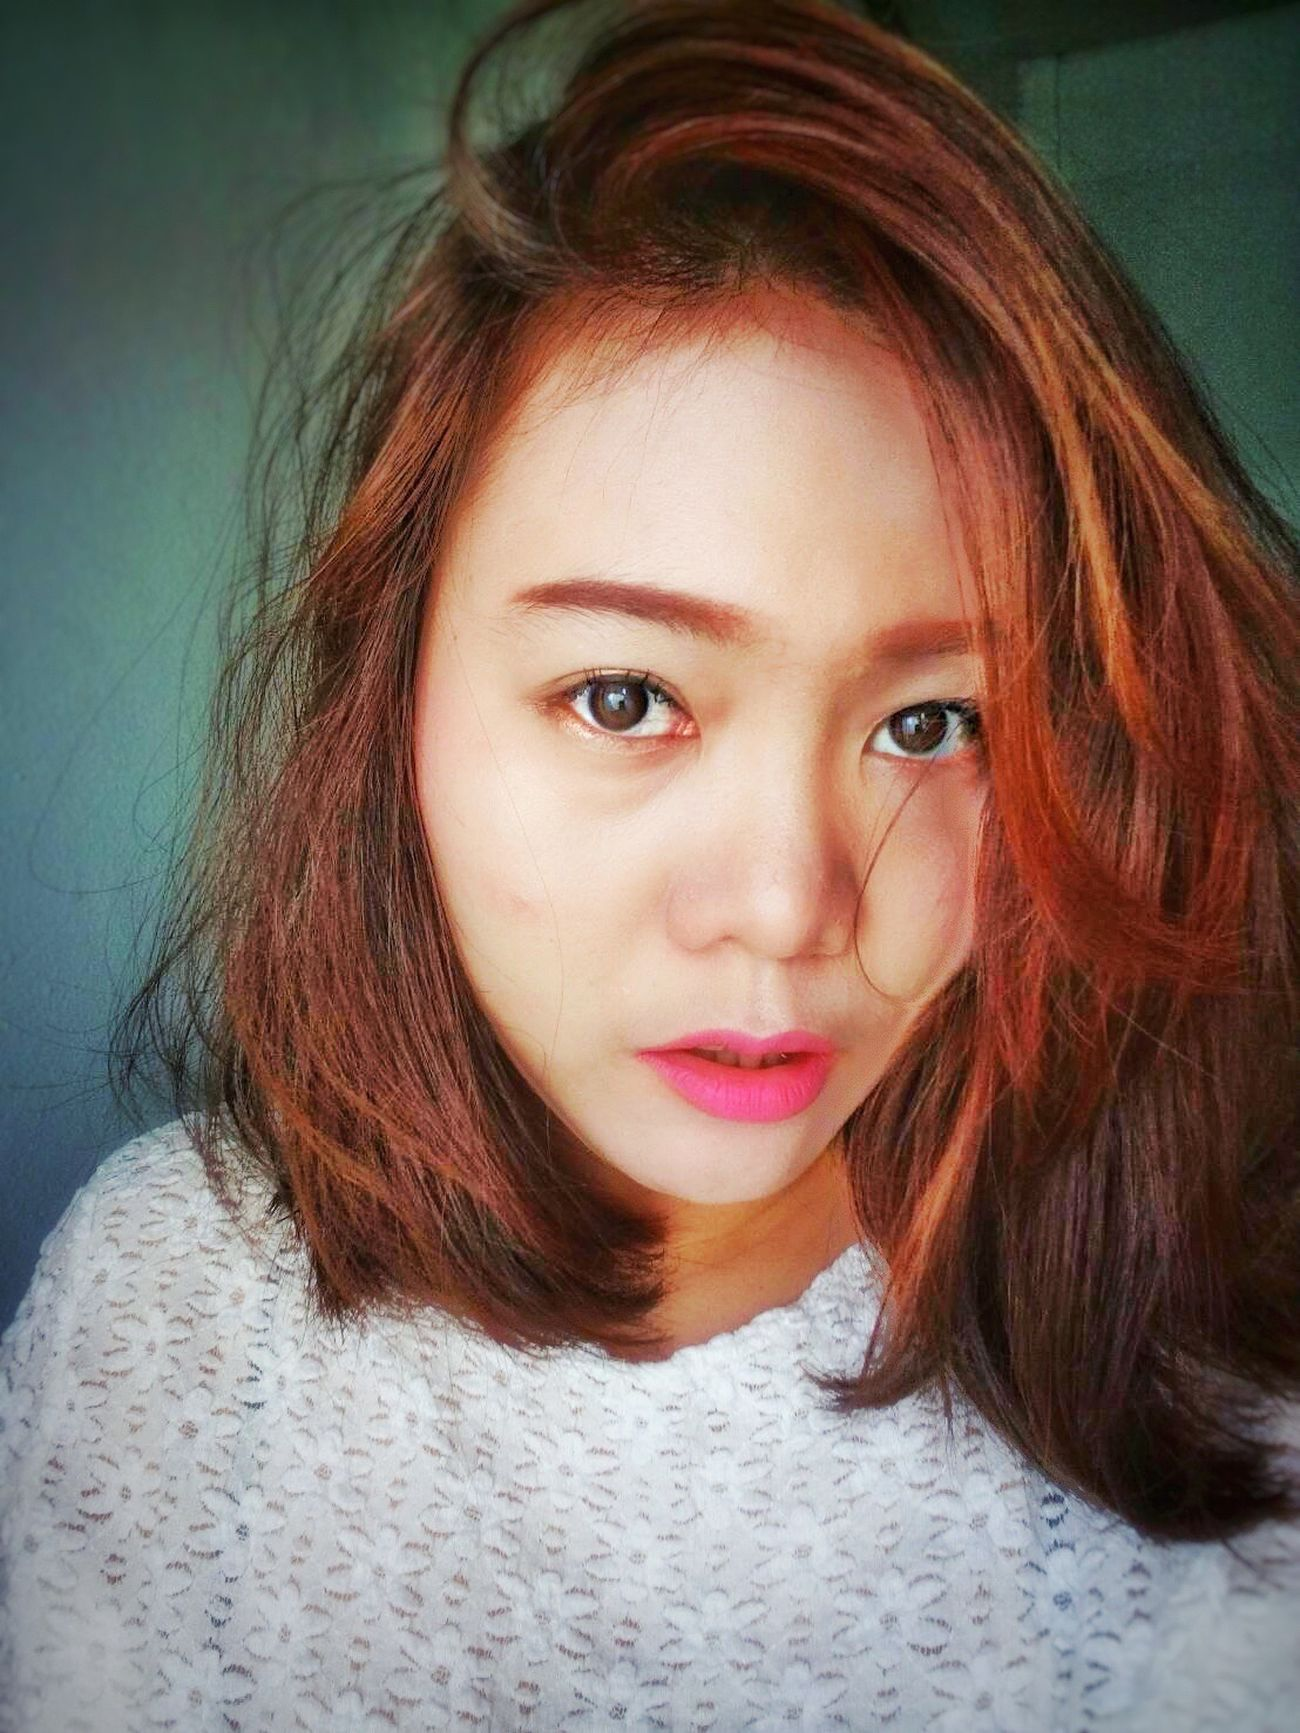 Its Me Looking At Camera Human Lips Day Off (null)Thai's Girl Girl #me #eyes #lips